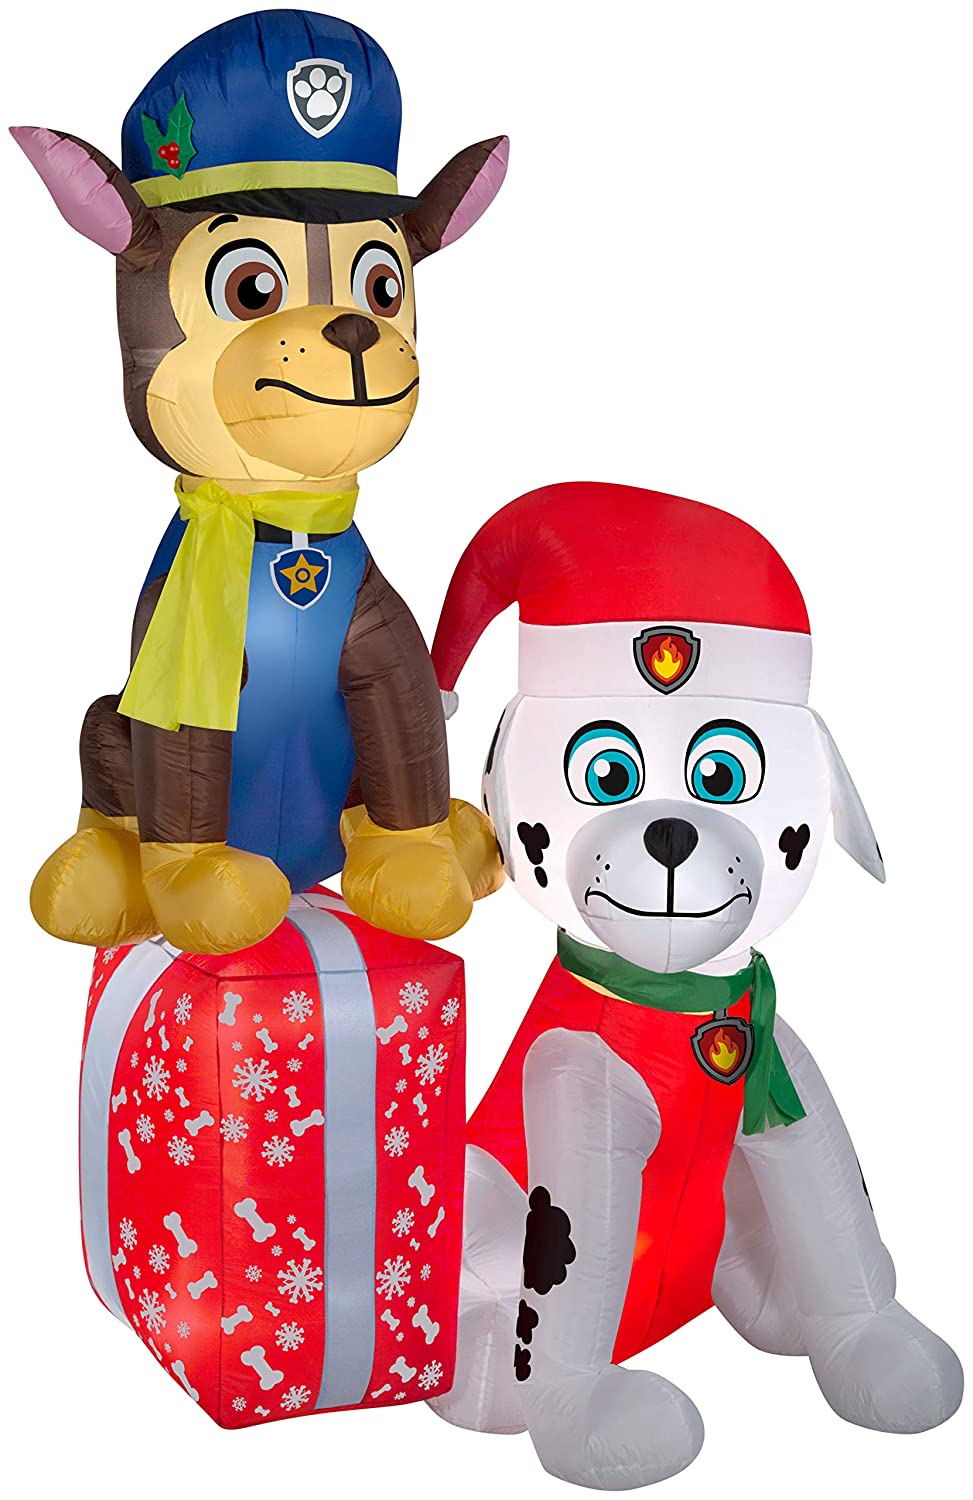 Gemmy 113036 Paw Patrol on Presents Airblown Christmas Inflatable 7 FT Tall